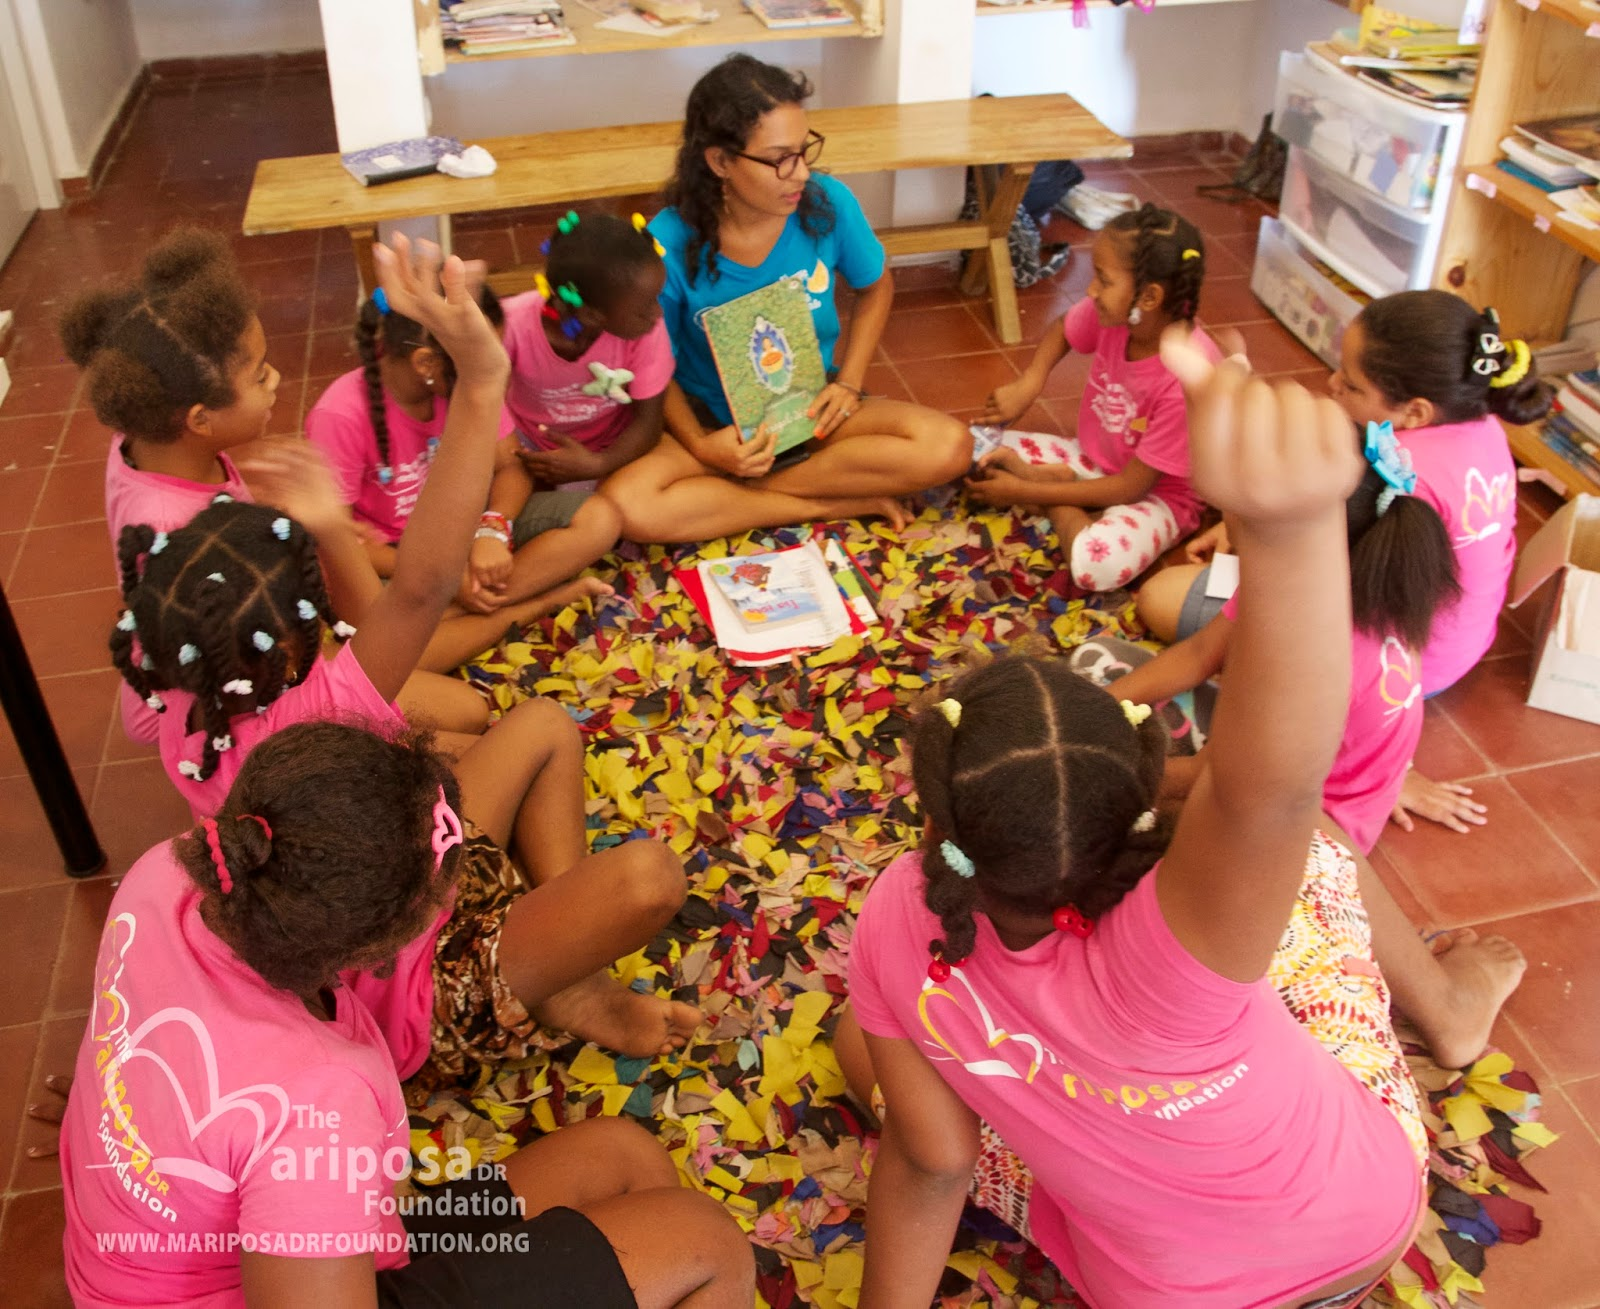 Mariposa DR Foundation – for the empowerment of girls